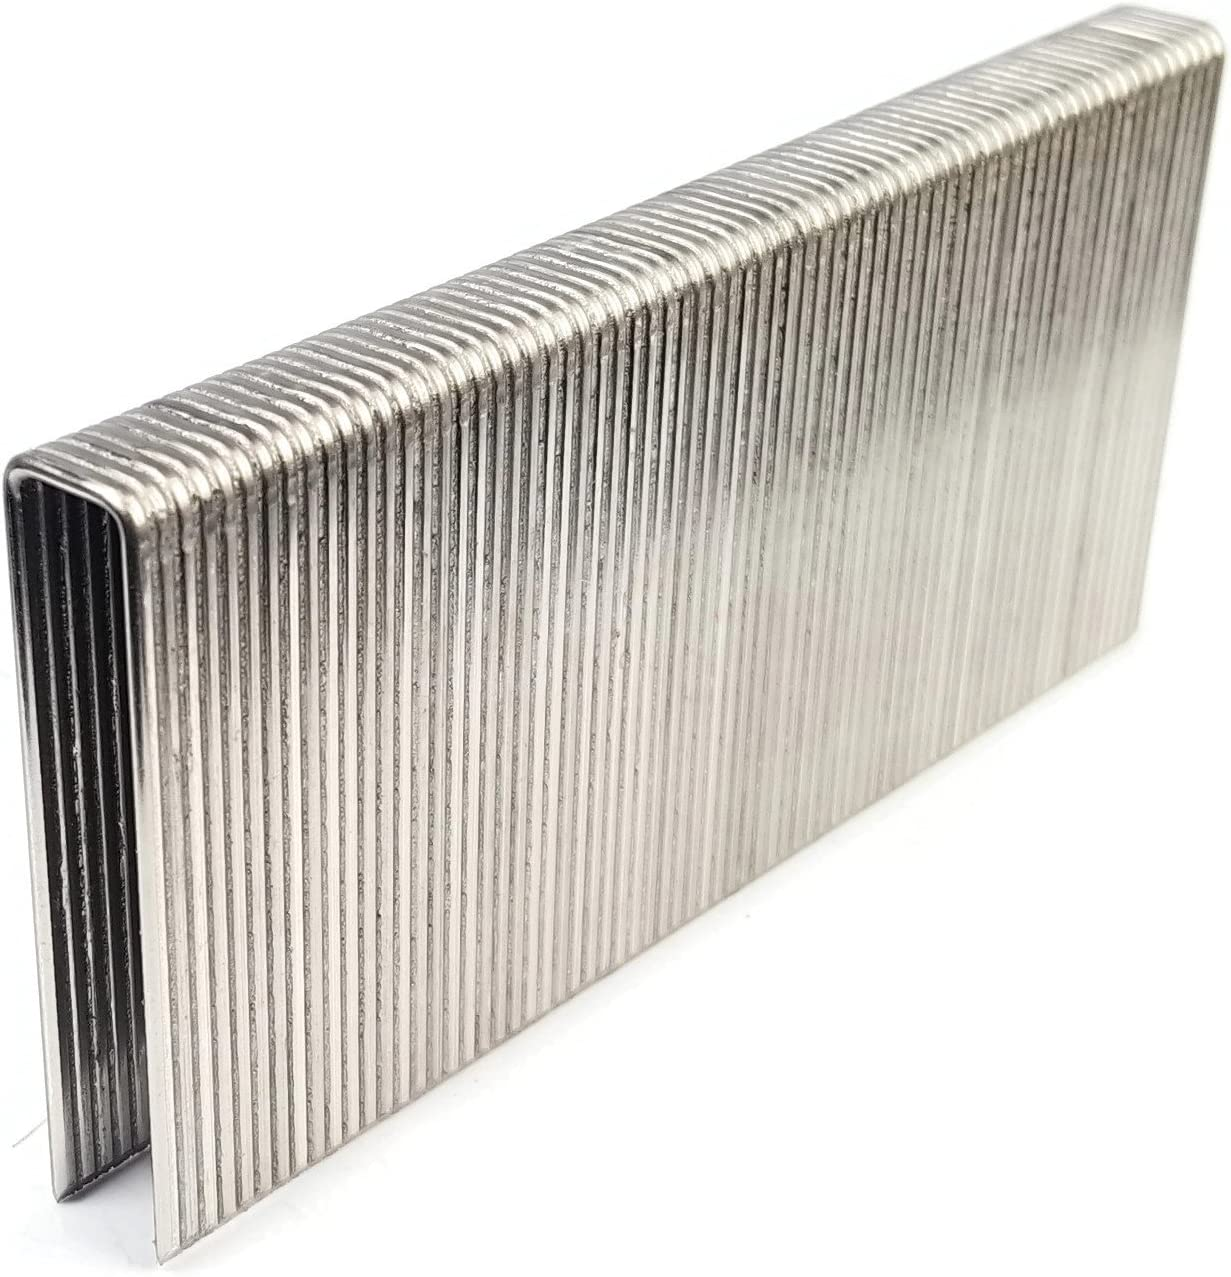 304 Stainless Steel Staples- 16 Gauge Fort Worth Max 62% OFF Mall Medium Crown Stapl N Style